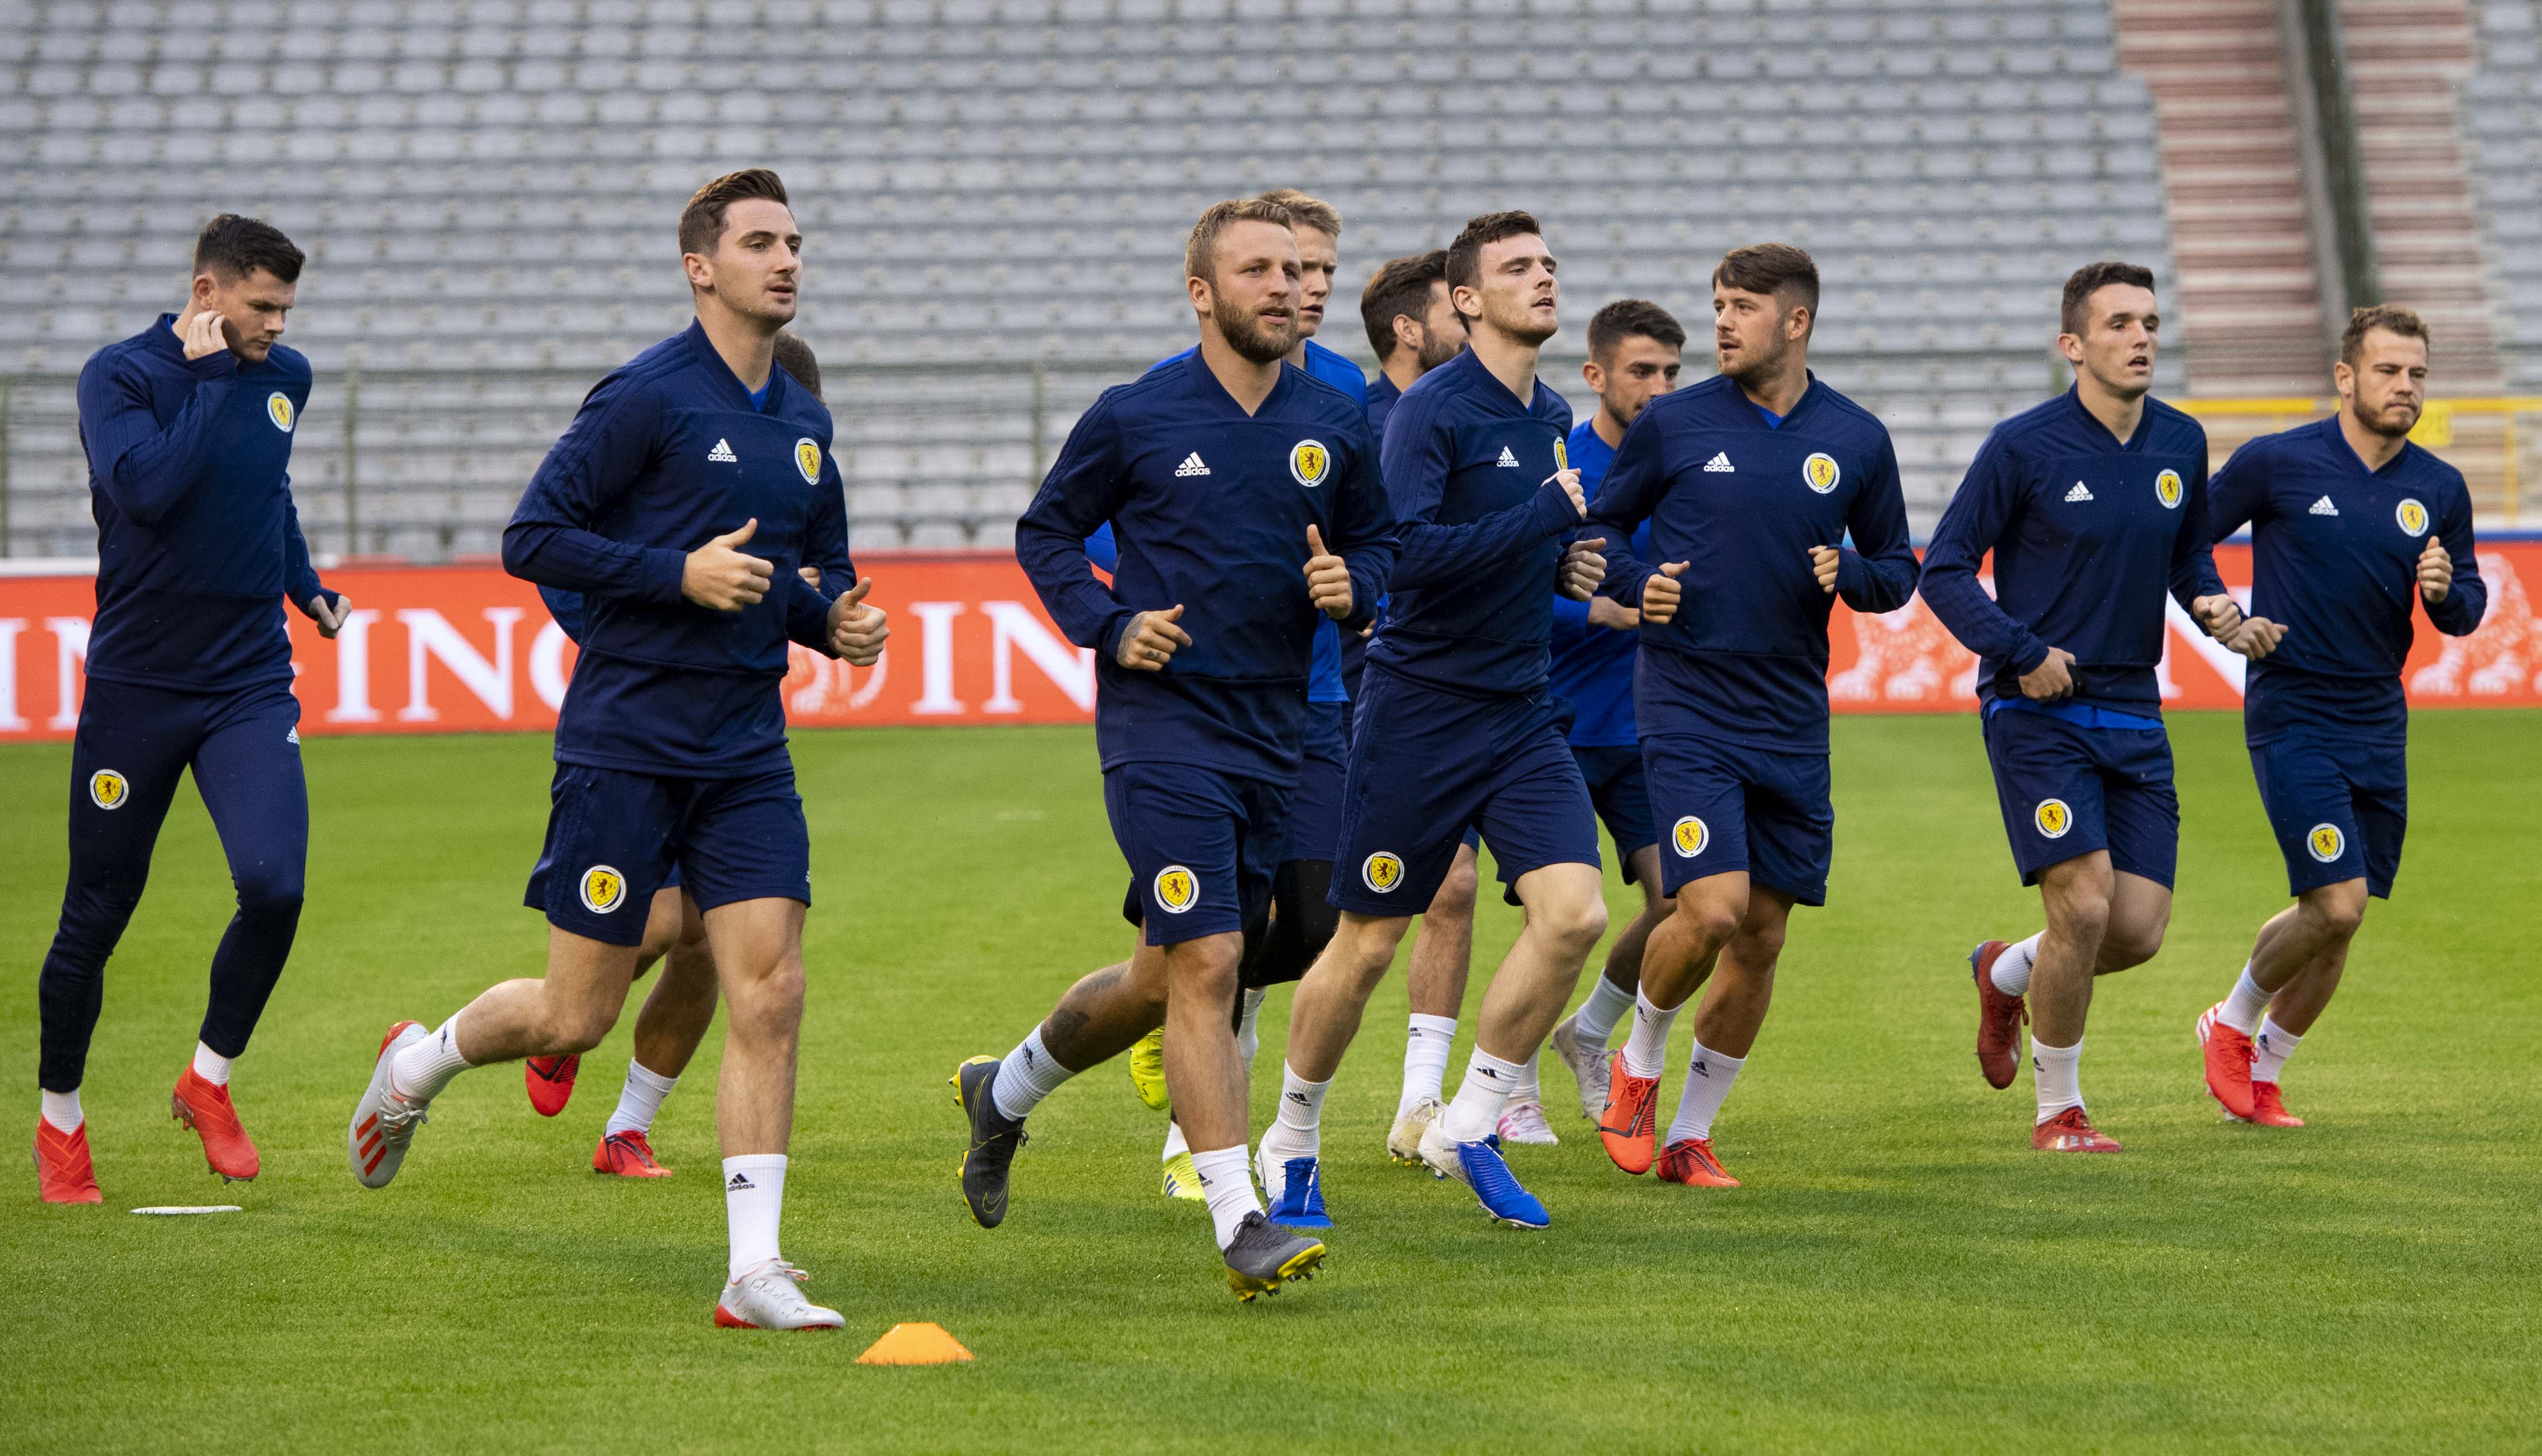 The Scotland players train in the King Baudouin Stadium.